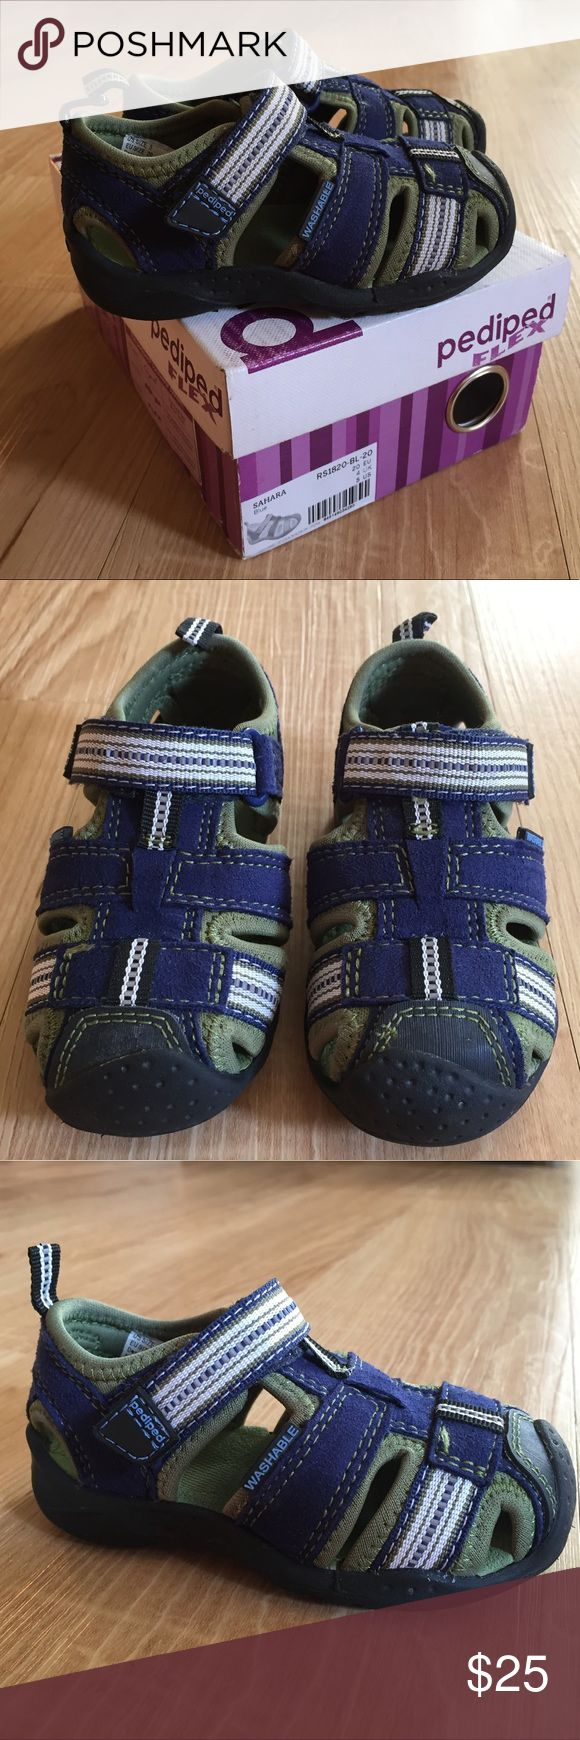 Pediped little boys Velcro closure sport sandals Nearly new (worn only twice) pediped sandals. European size 20. USA size 5. We have bought pediped shoes for all of our children through the years. They are a wonderful product and wear beautifully! pediped Shoes Sandals & Flip Flops